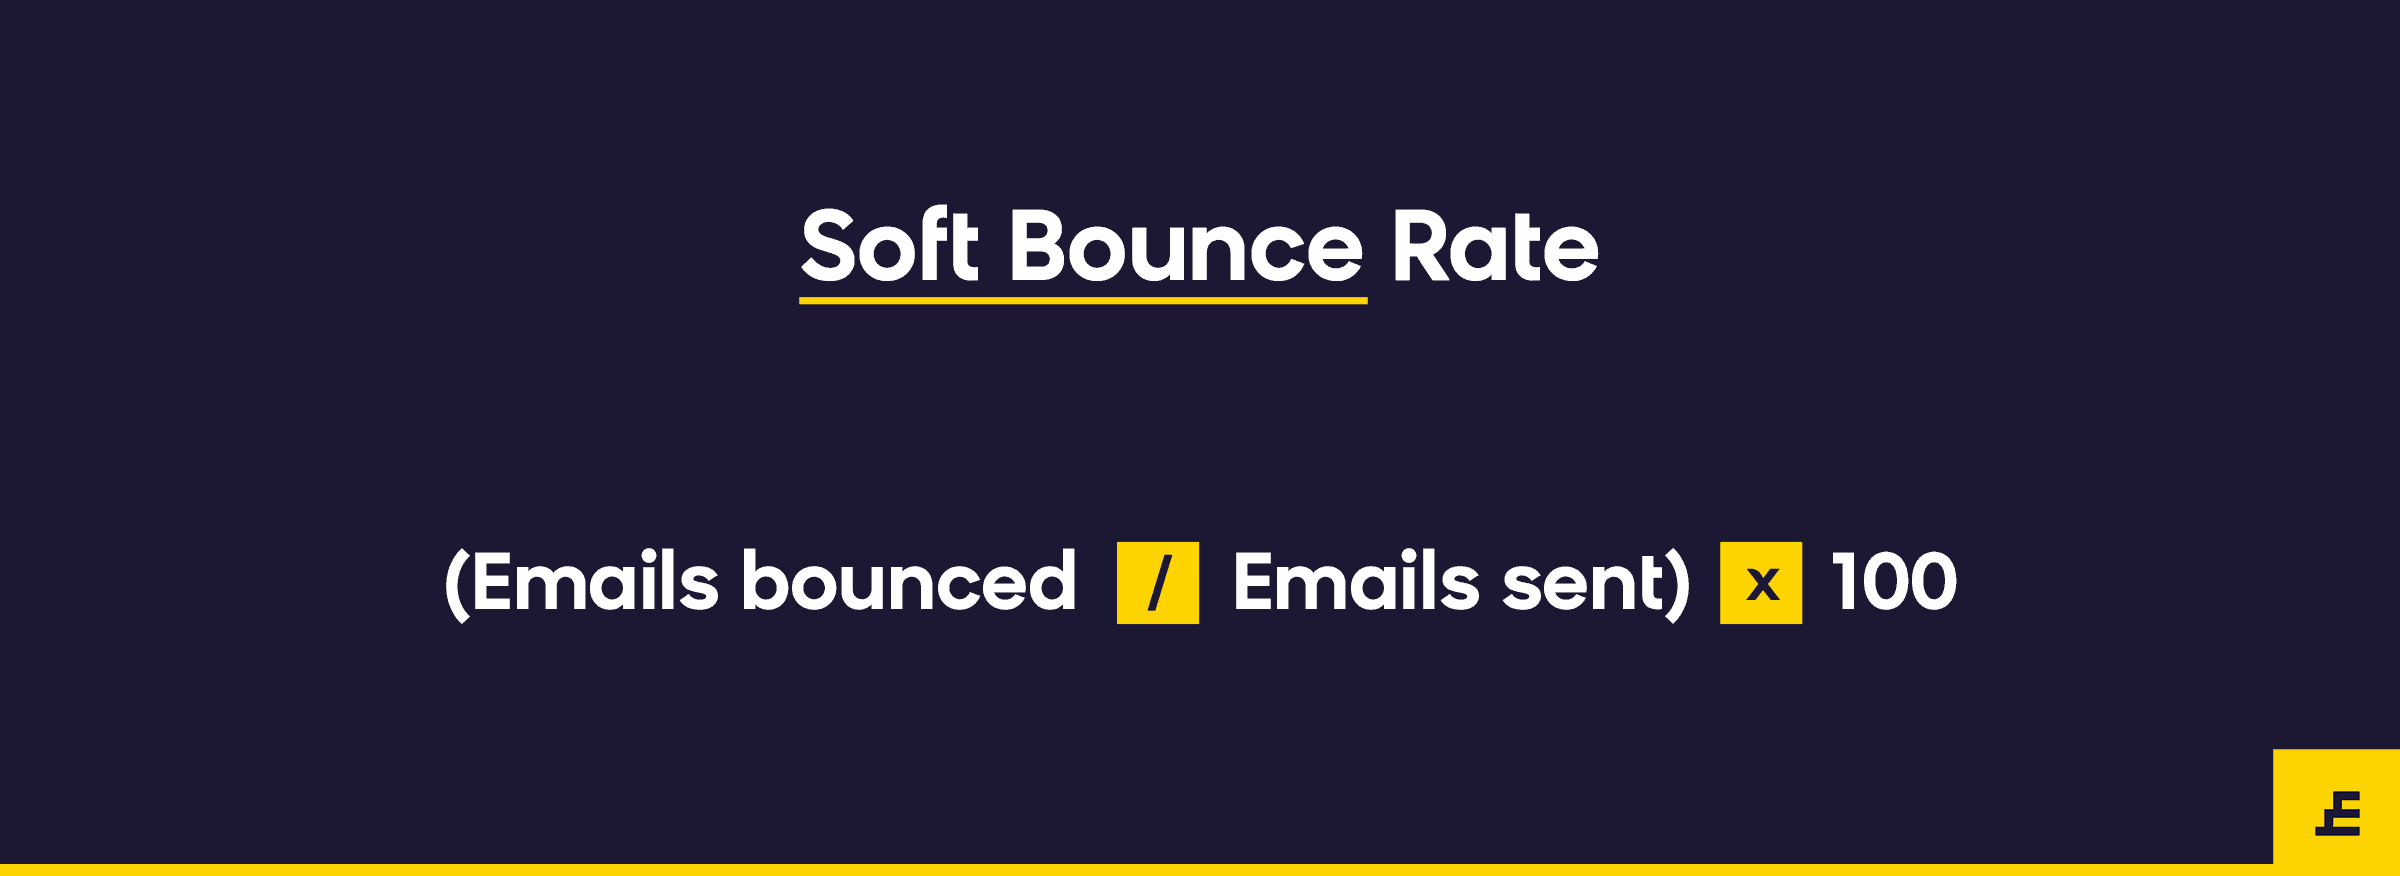 email marketing metric - soft bounce rate